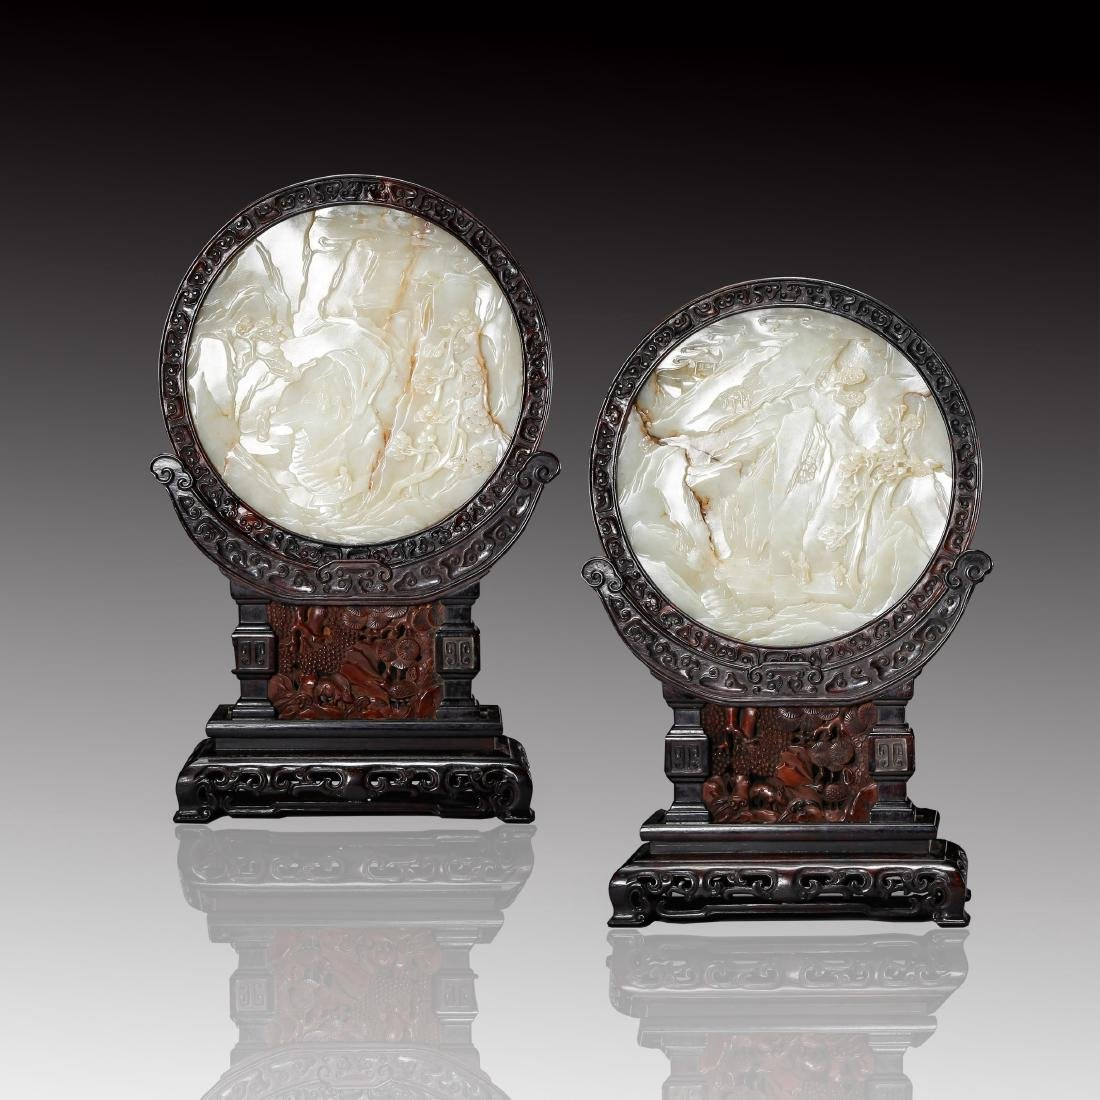 PAIR OF CHINESE CELADON WHITE JADE TABLE SCREENS